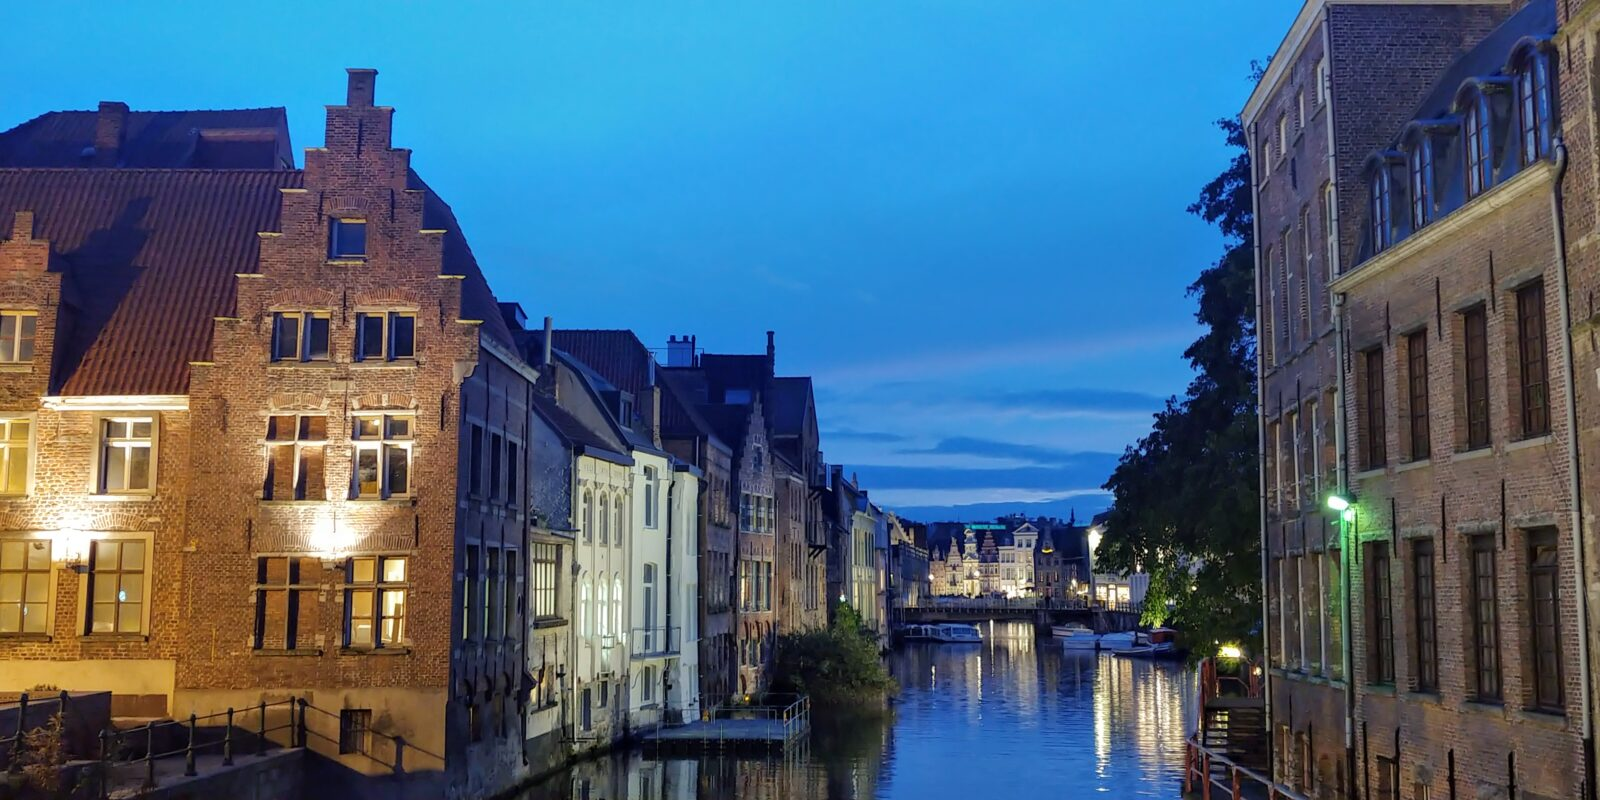 City of Ghent